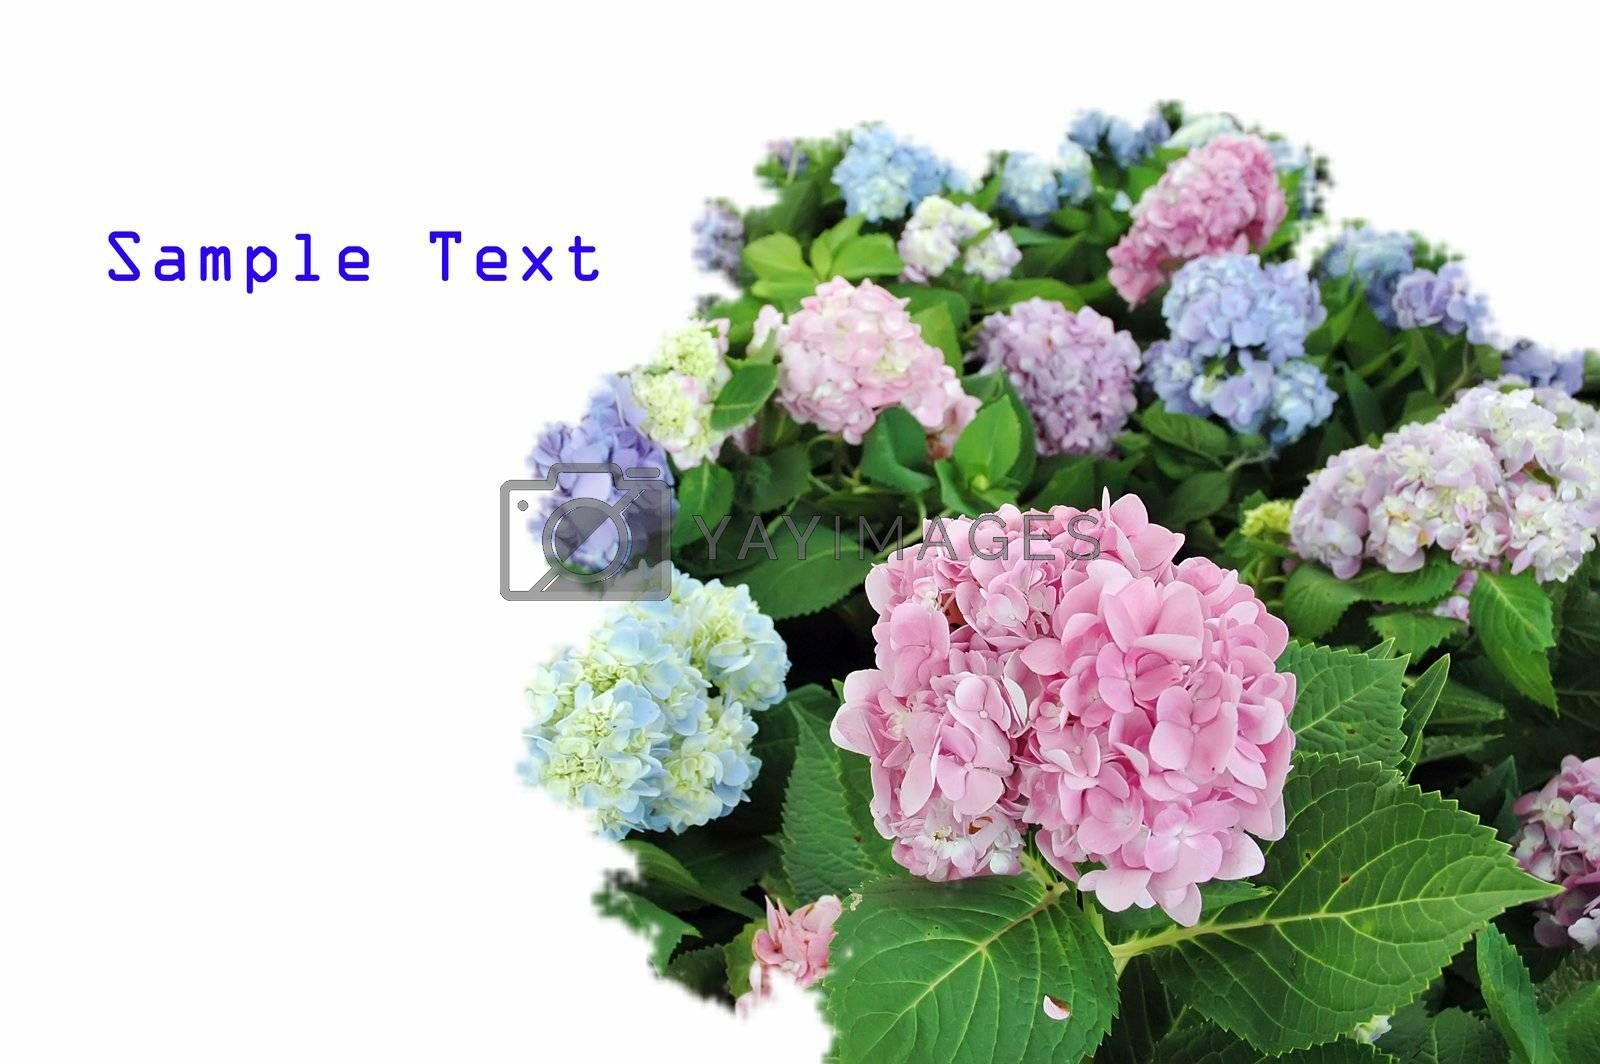 Flowers in the garden with text